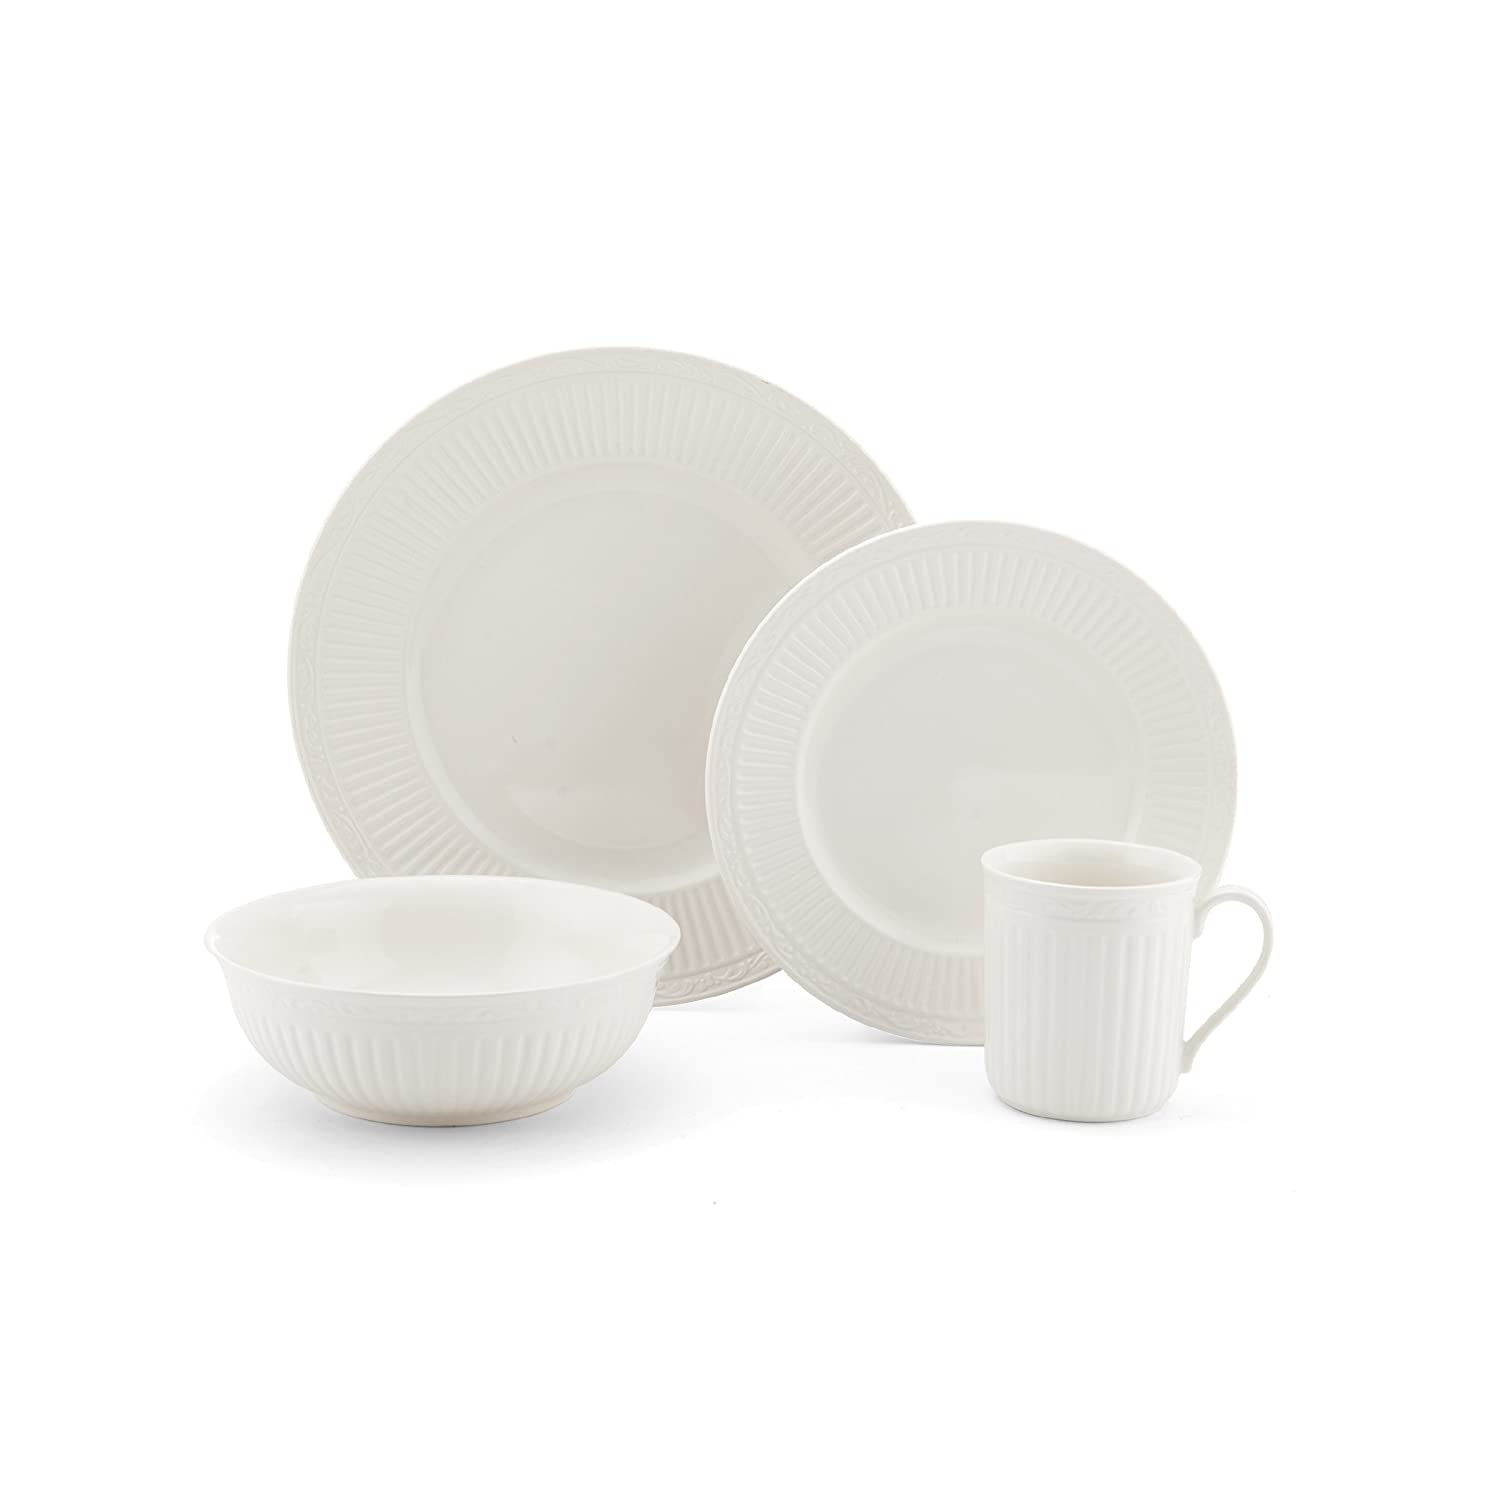 Amazon.com Mikasa Italian Countryside 4-Piece Place Setting Service for 1 Kitchen u0026 Dining  sc 1 st  Amazon.com : mikasa italian countryside dinner plate - pezcame.com